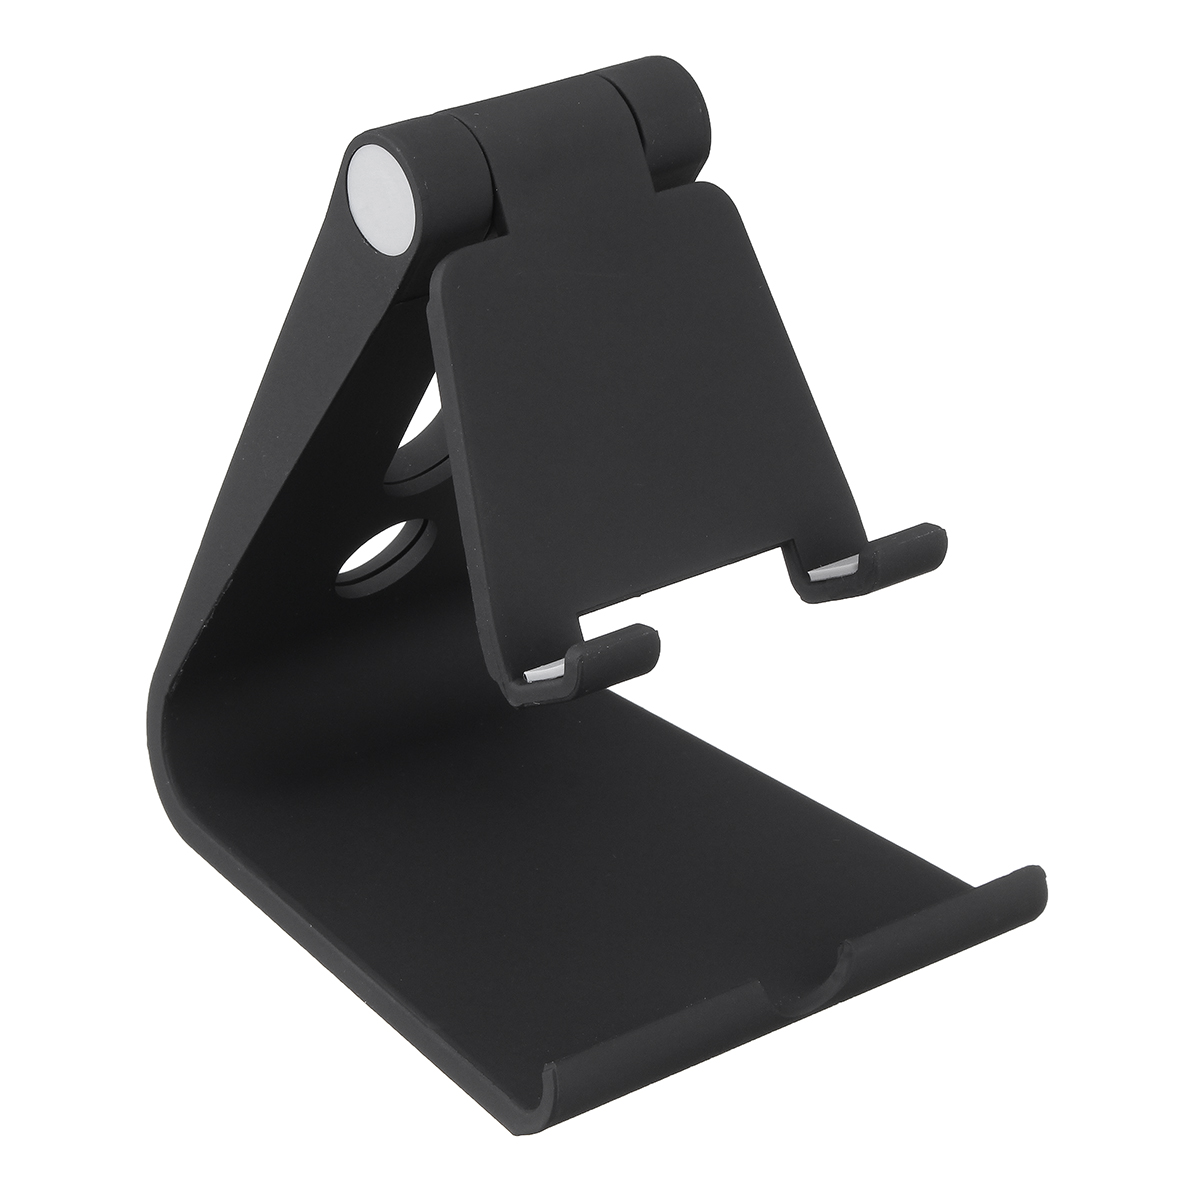 iphone desk stand adjustable desk desktop phone stand holder for iphone 8 x 11799